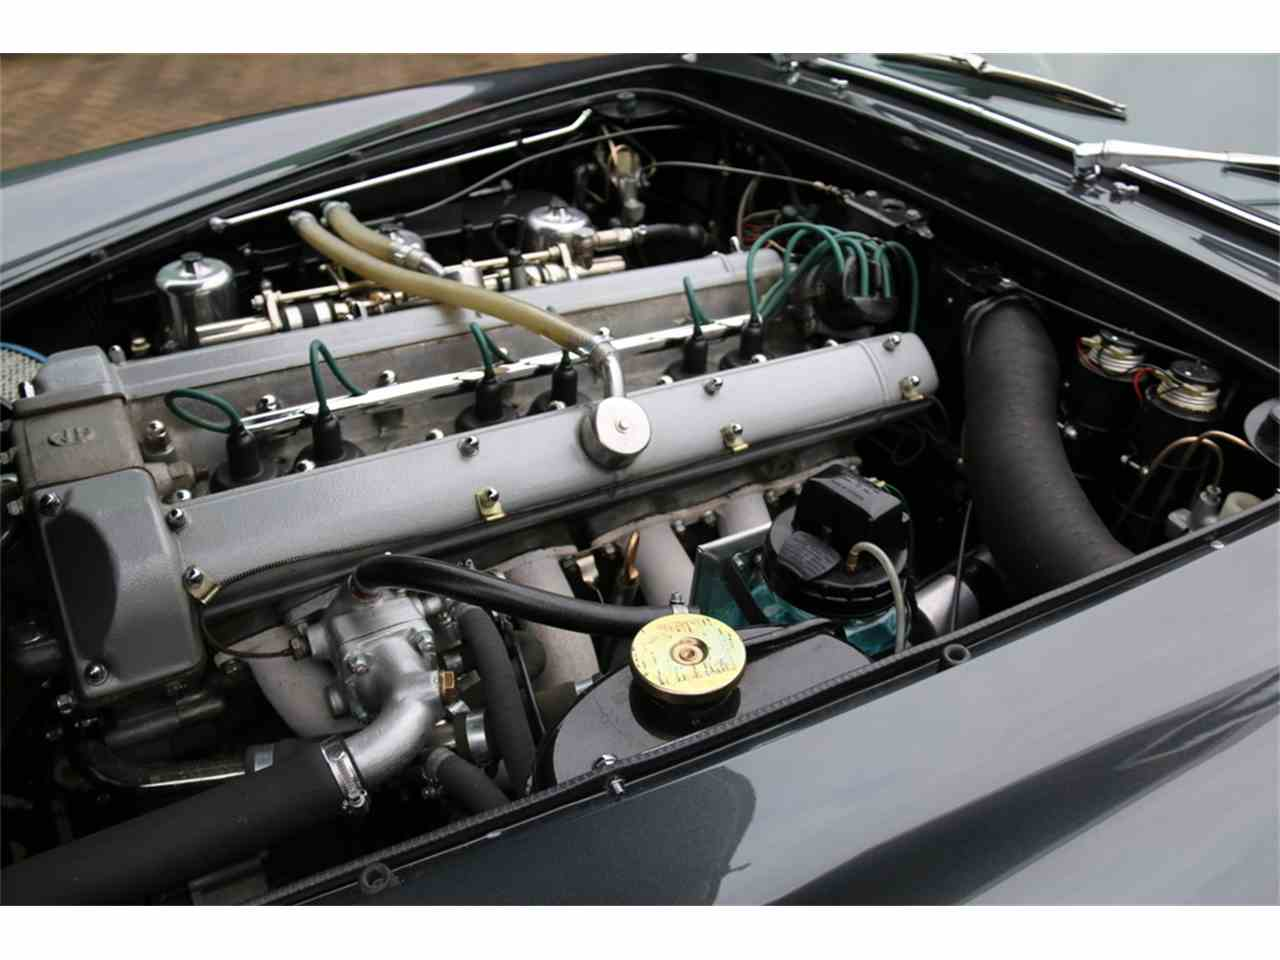 Large Picture of Classic 1970 DB6 Mark II located in  Offered by JD Classics LTD - LRY5